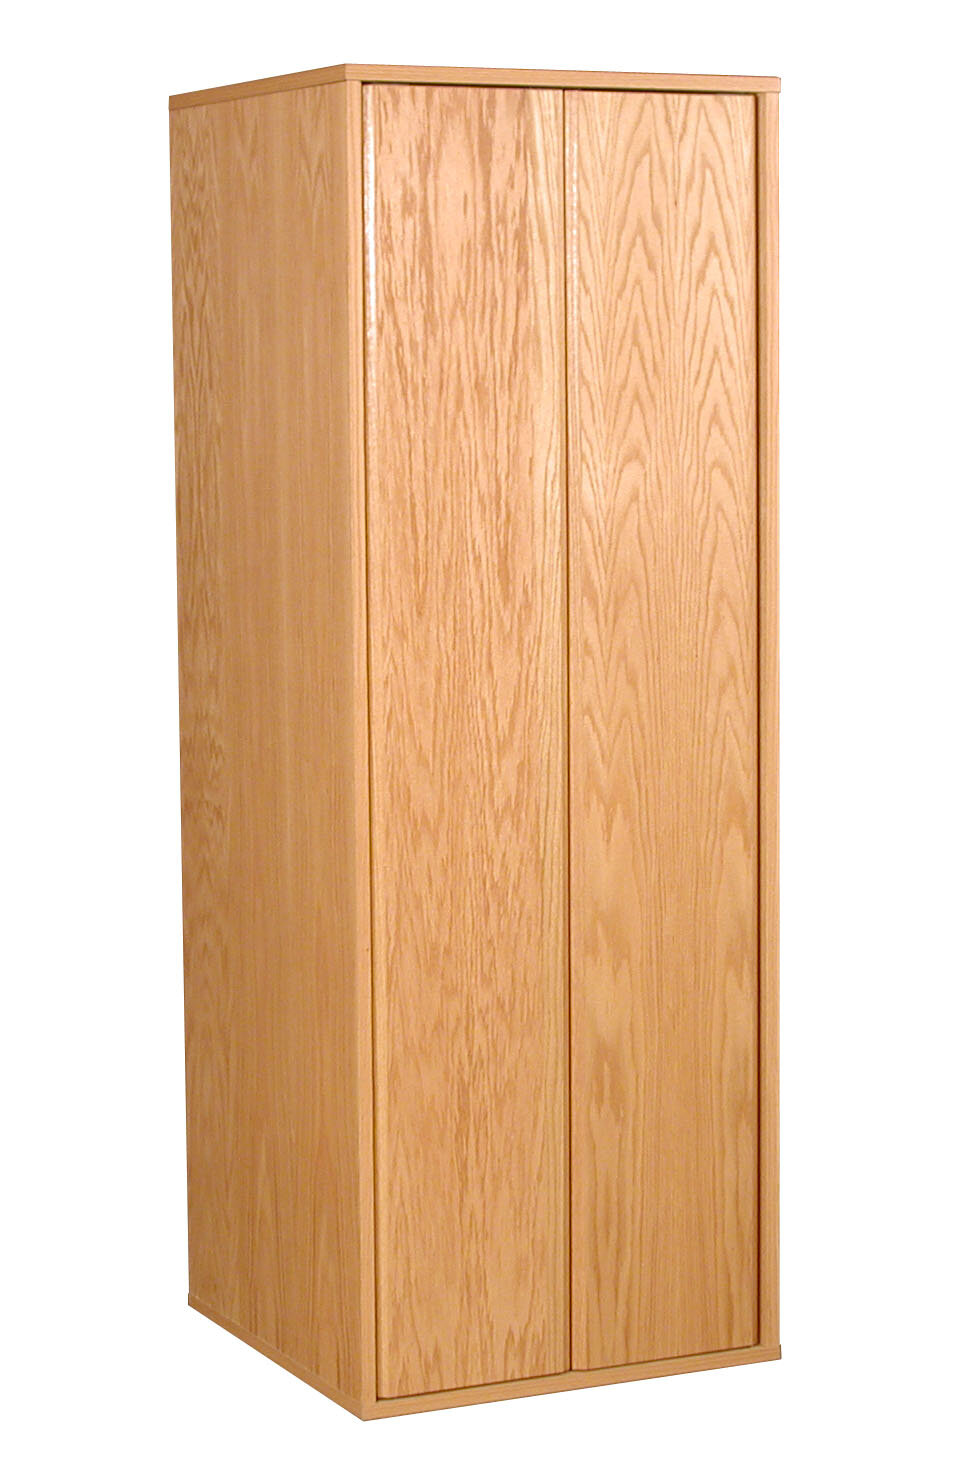 Rush Furniture Modular 2 Door Storage Cabinet Wayfair